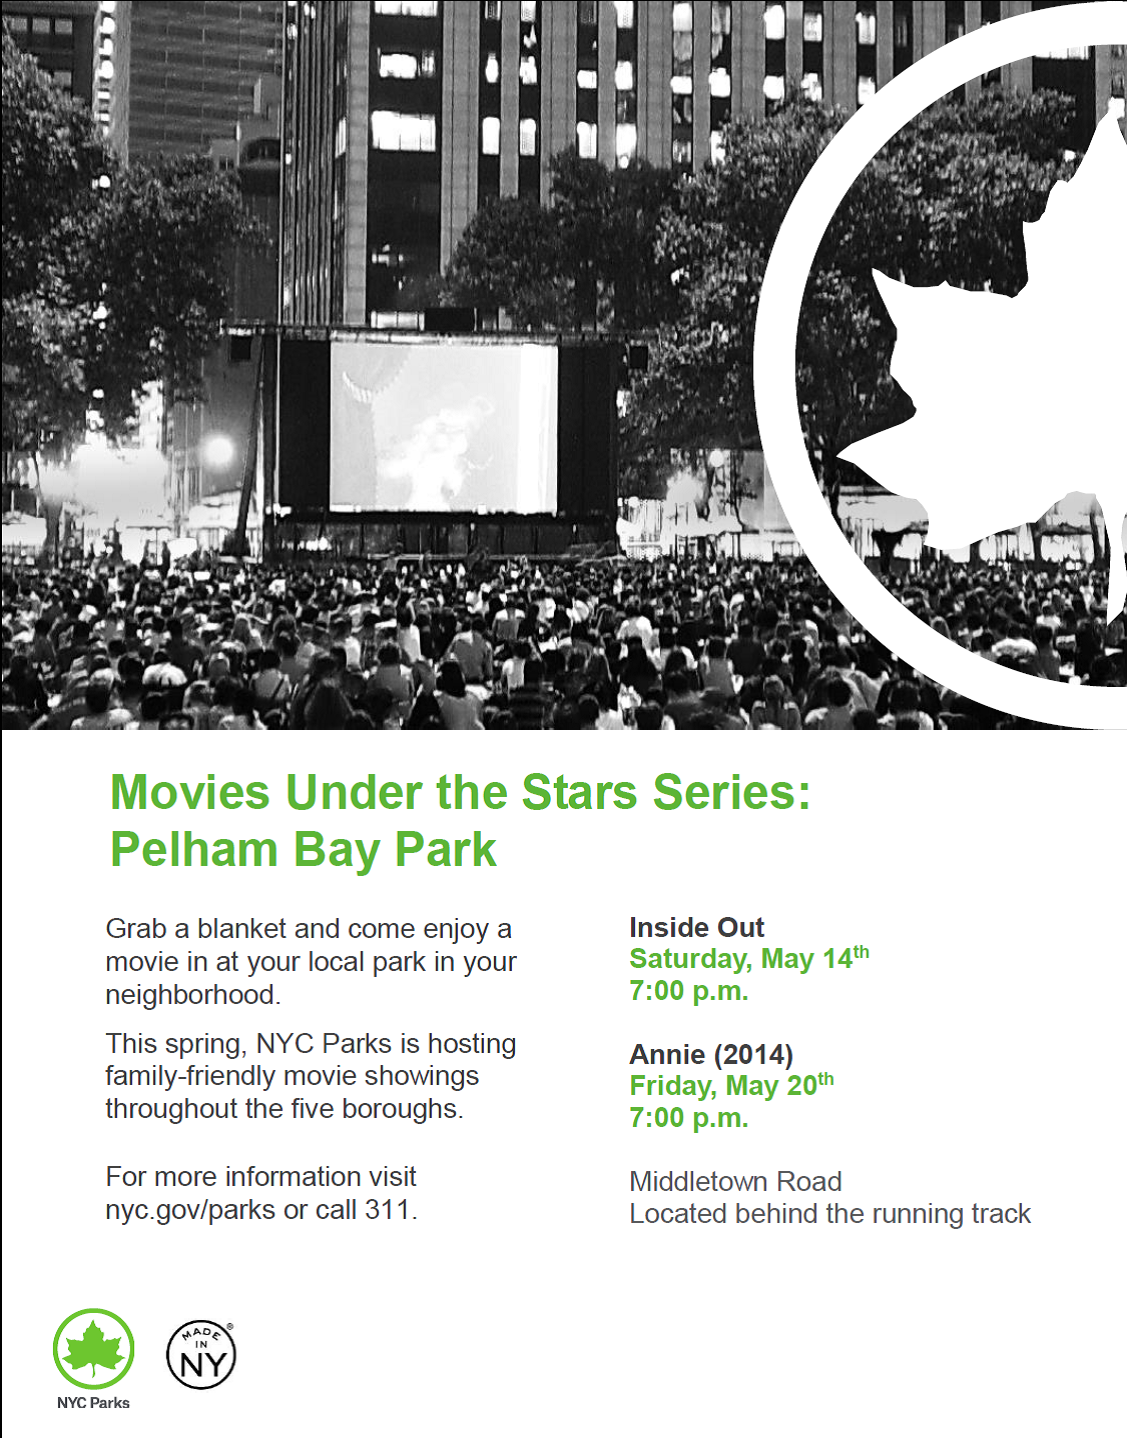 Outdoor Movies at Pelham Bay Park